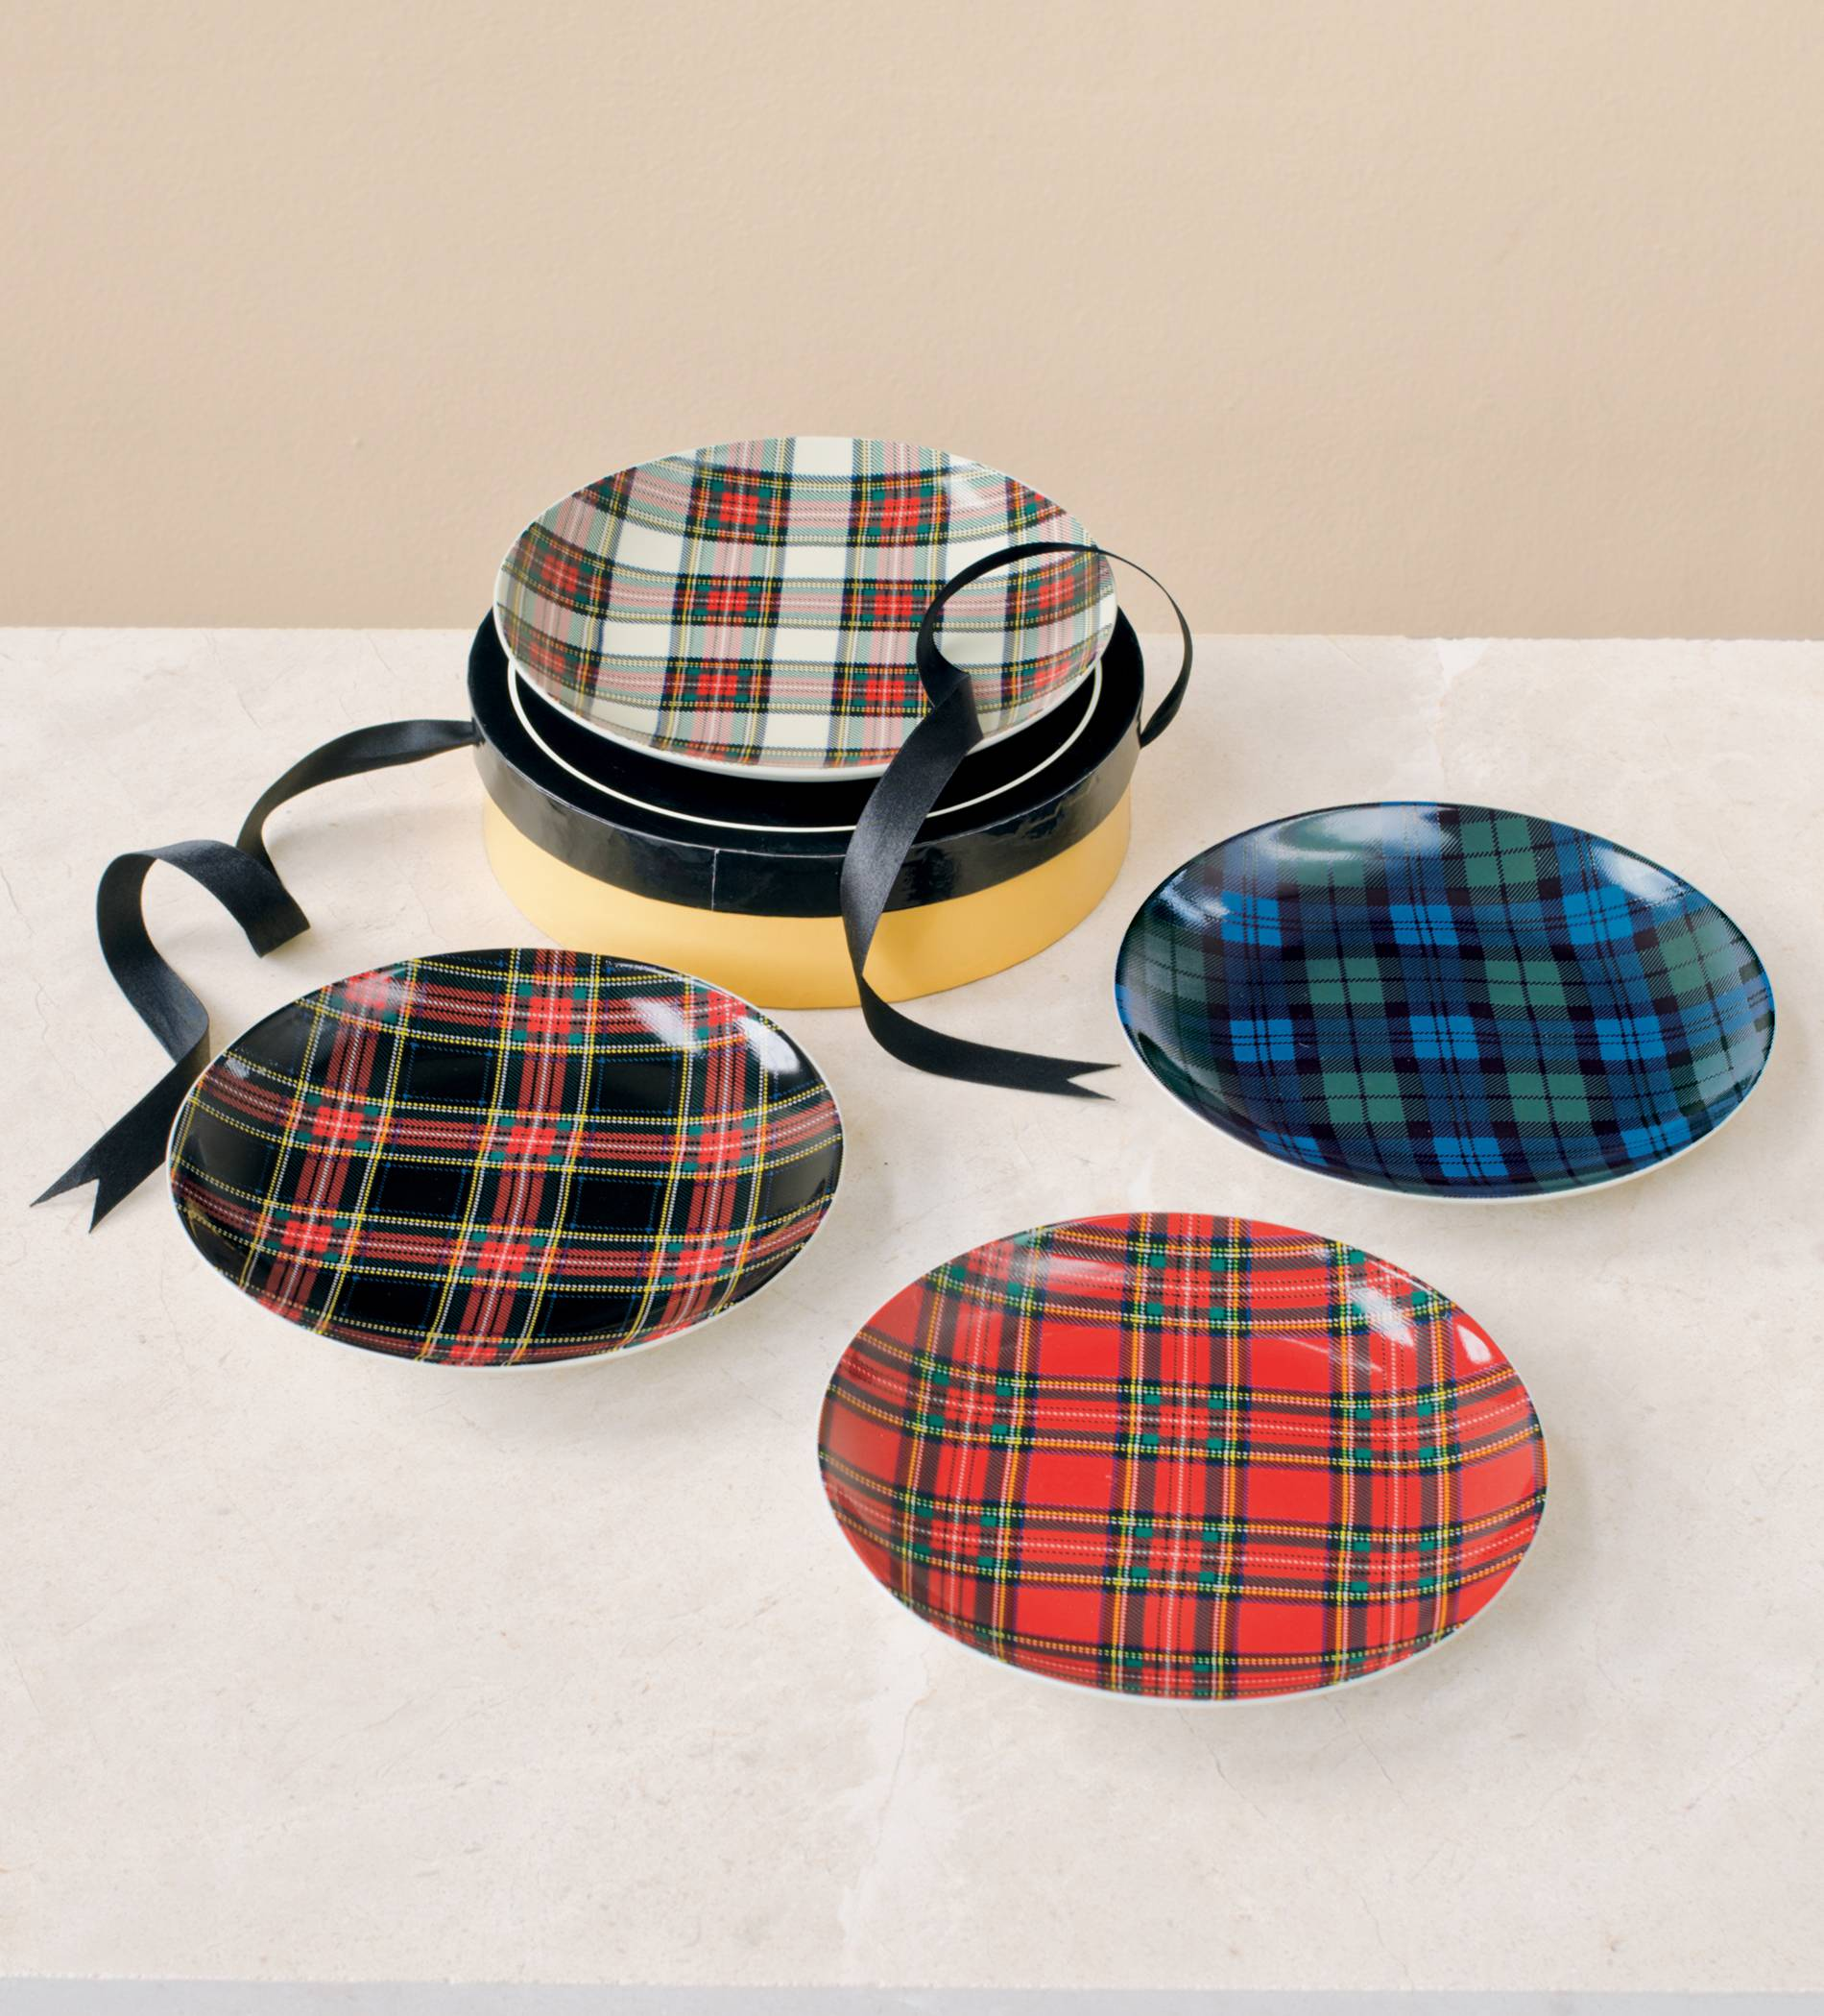 Tartan plates, such as these found at Pendleton-usa.com, take the Scottish décor trend to the table. The iconic pattern is showing up on furnishings and accessories for this fall as Scotland joins England as an inspiration for designers.